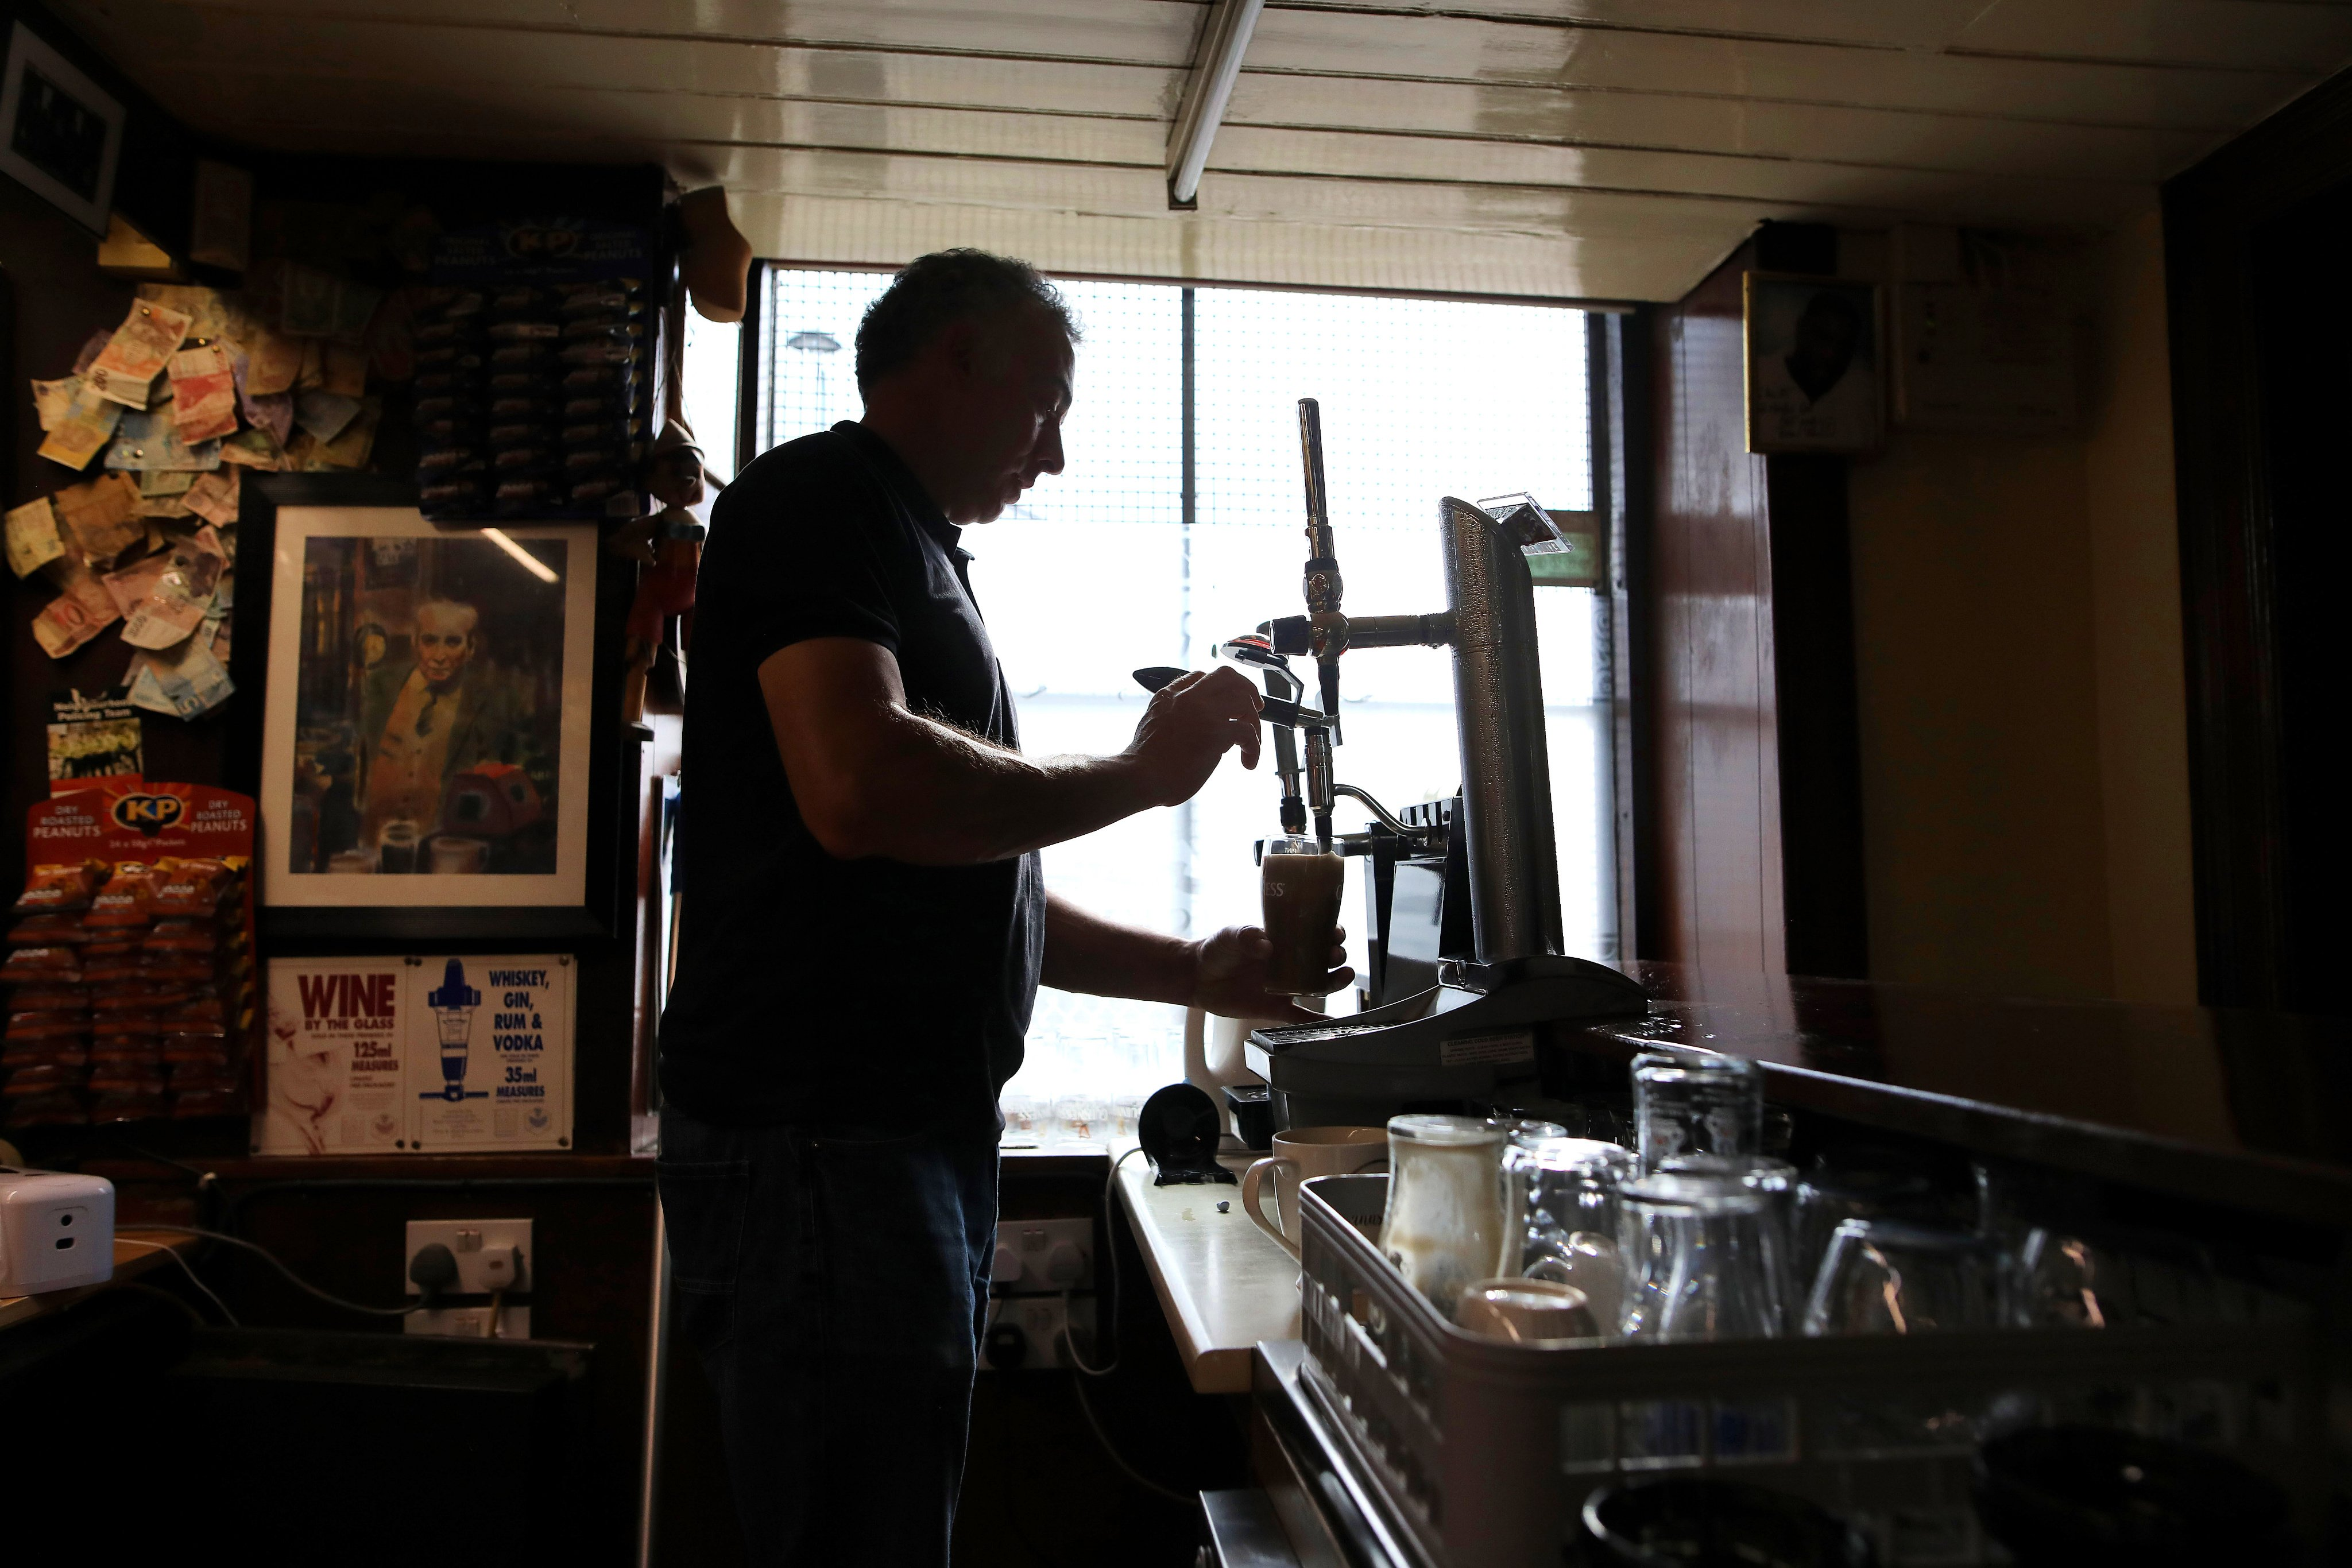 'Special day' for customers as N Ireland's non-food pubs reopen